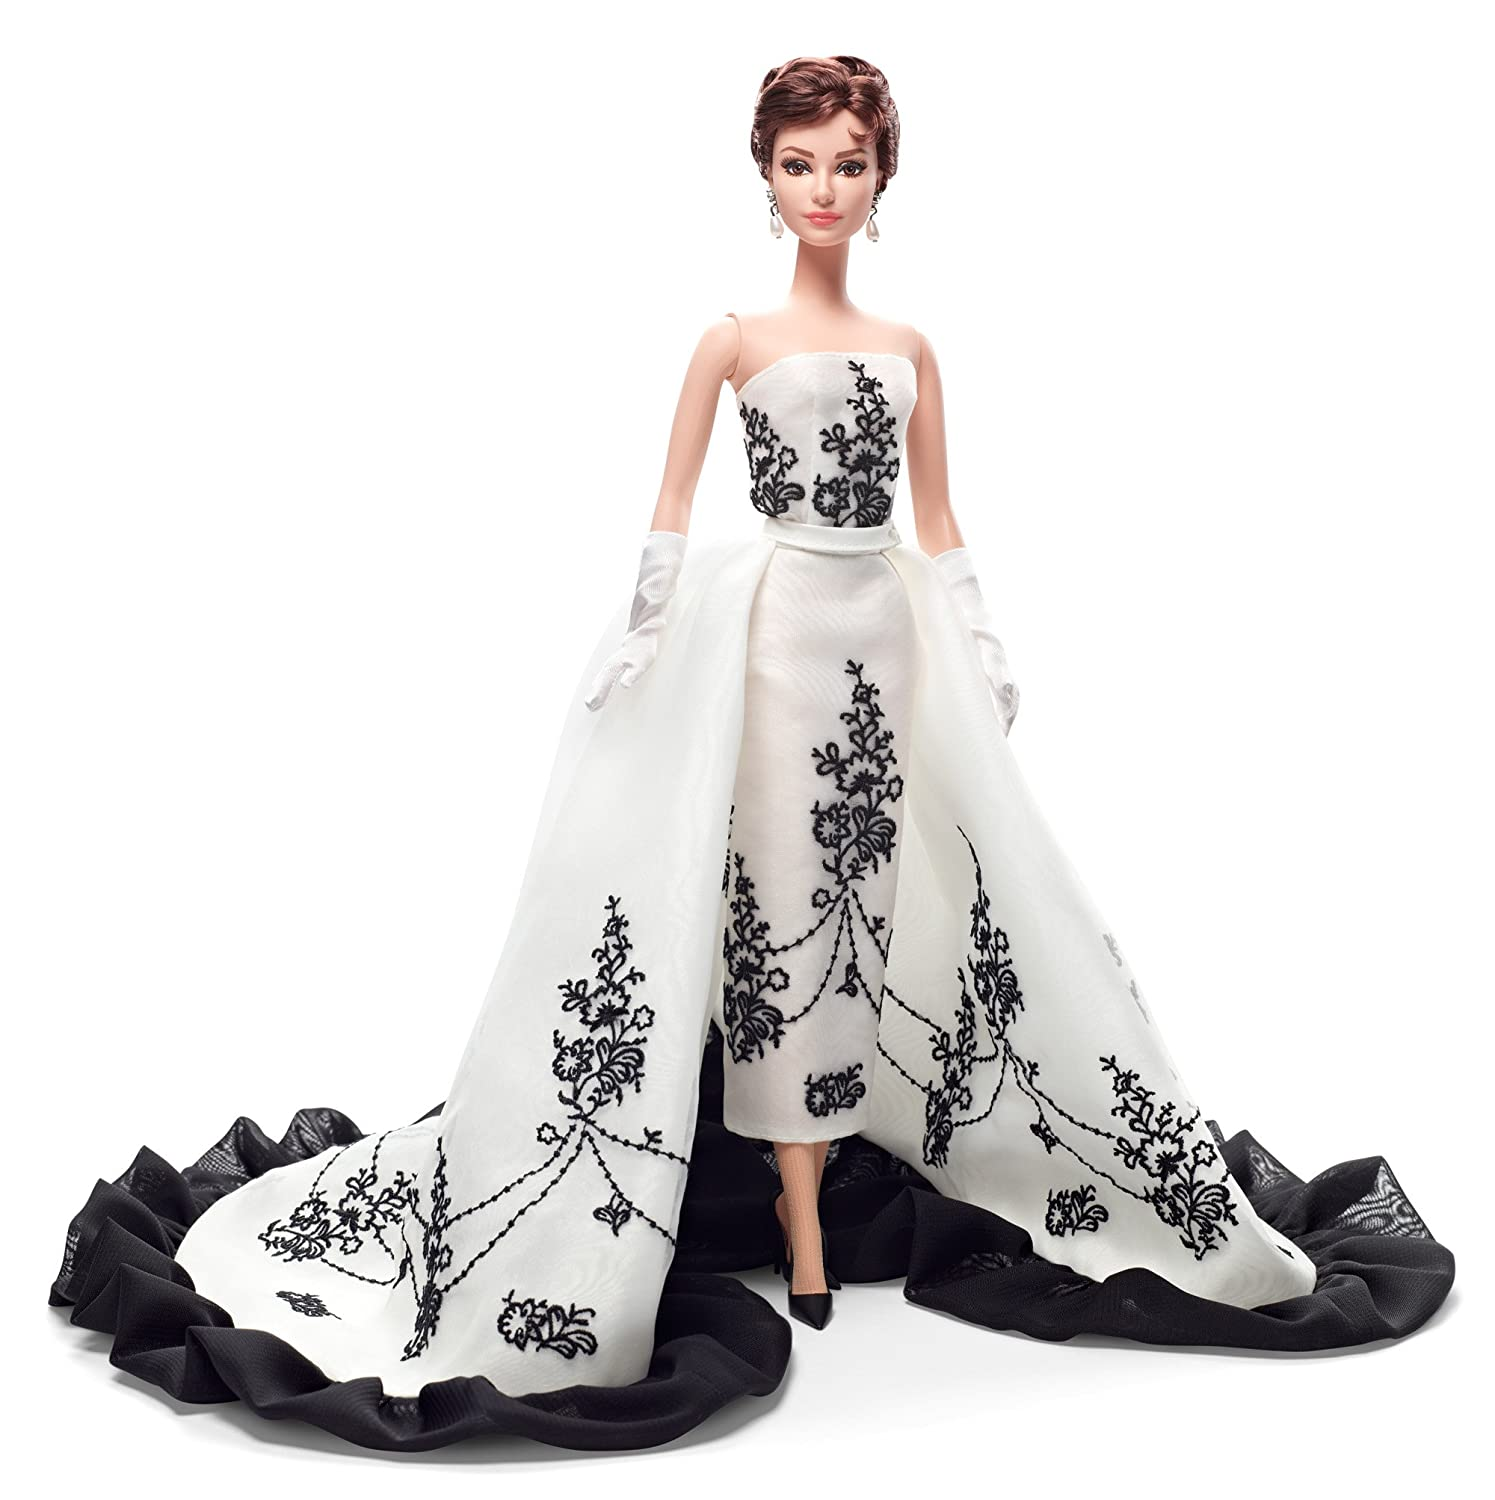 Amazon.com: Barbie Collector Audrey Hepburn Sabrina Doll: Toys & Games